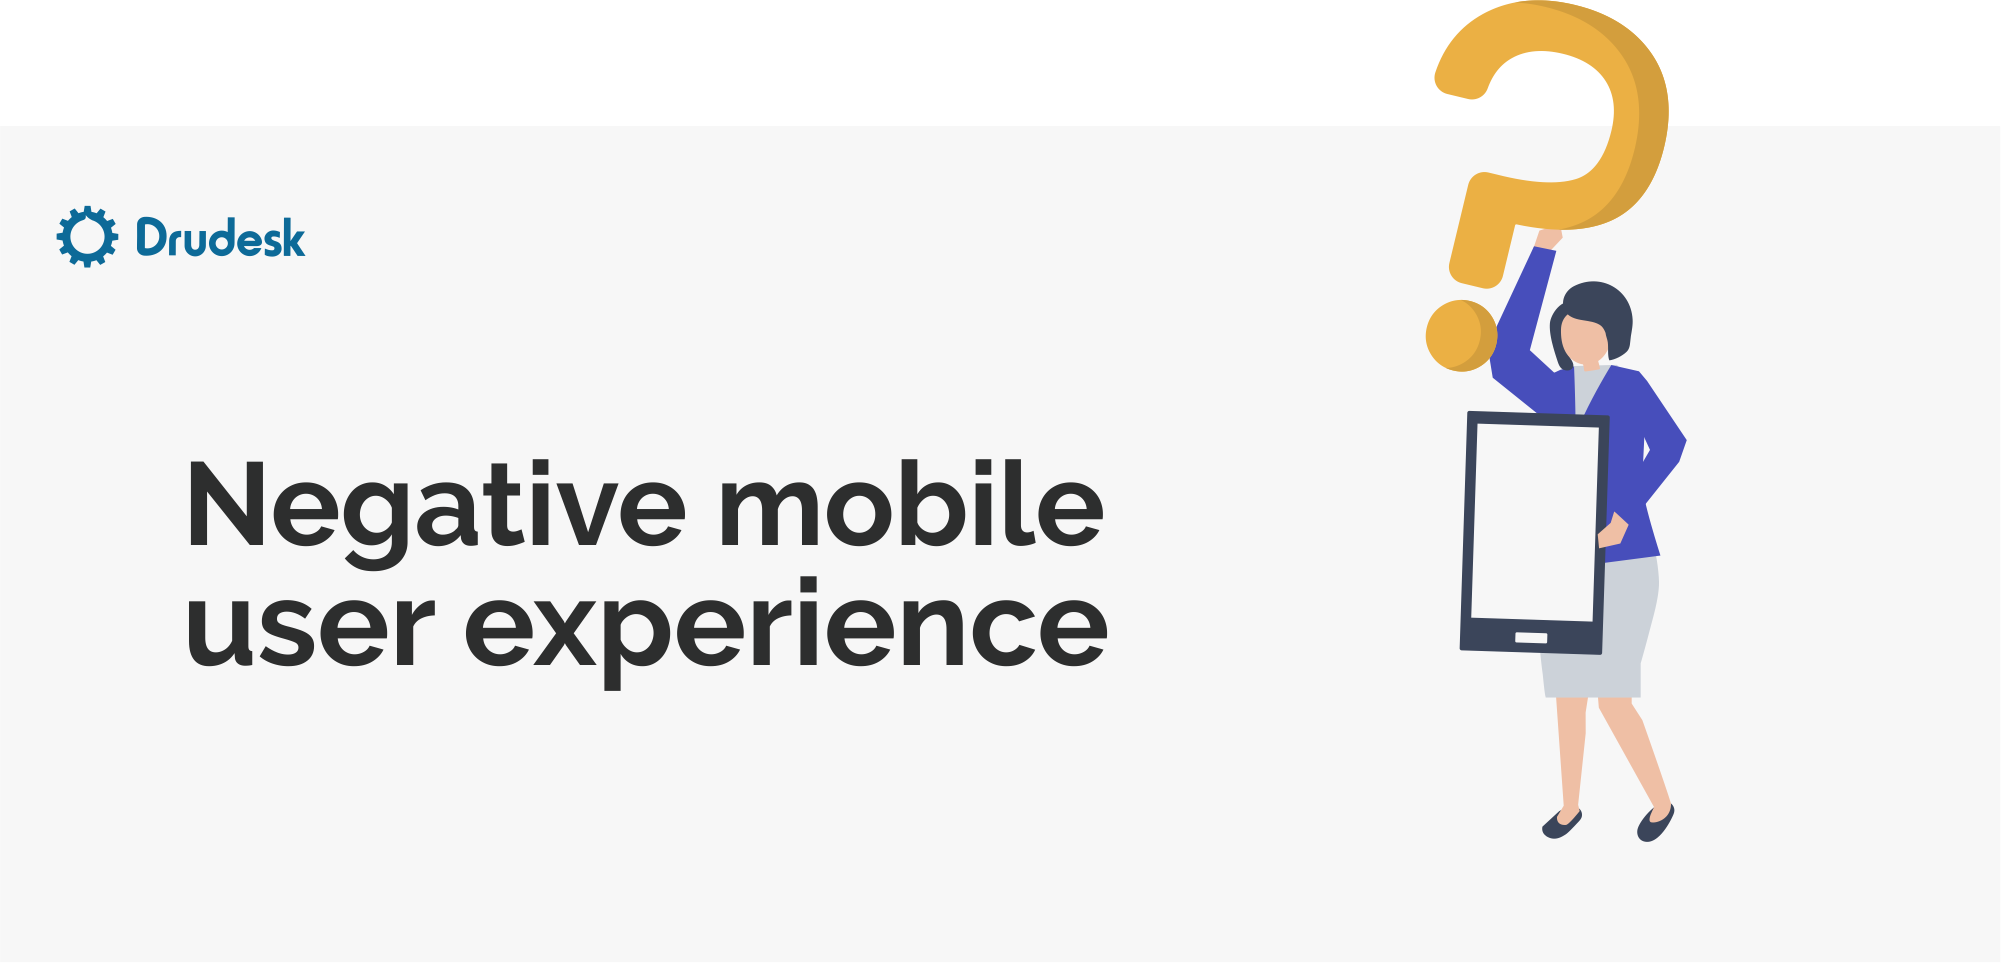 Negative mobile user experience